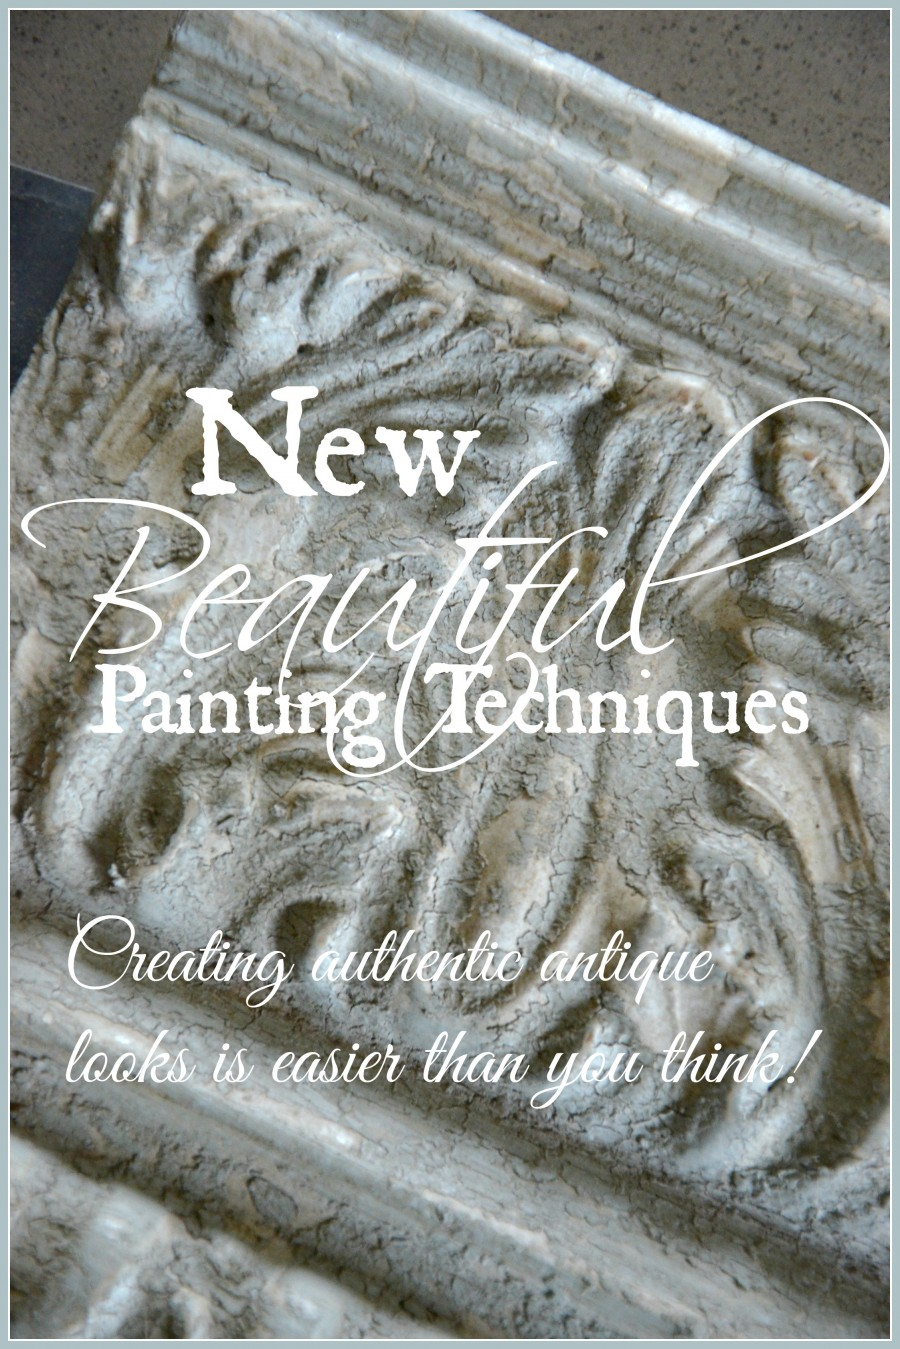 NEW BEAUTIFUL PAINTING TECHNIQUES-Creating beautiful and authentic antique finishes is easier than you think-stonegableblog.com